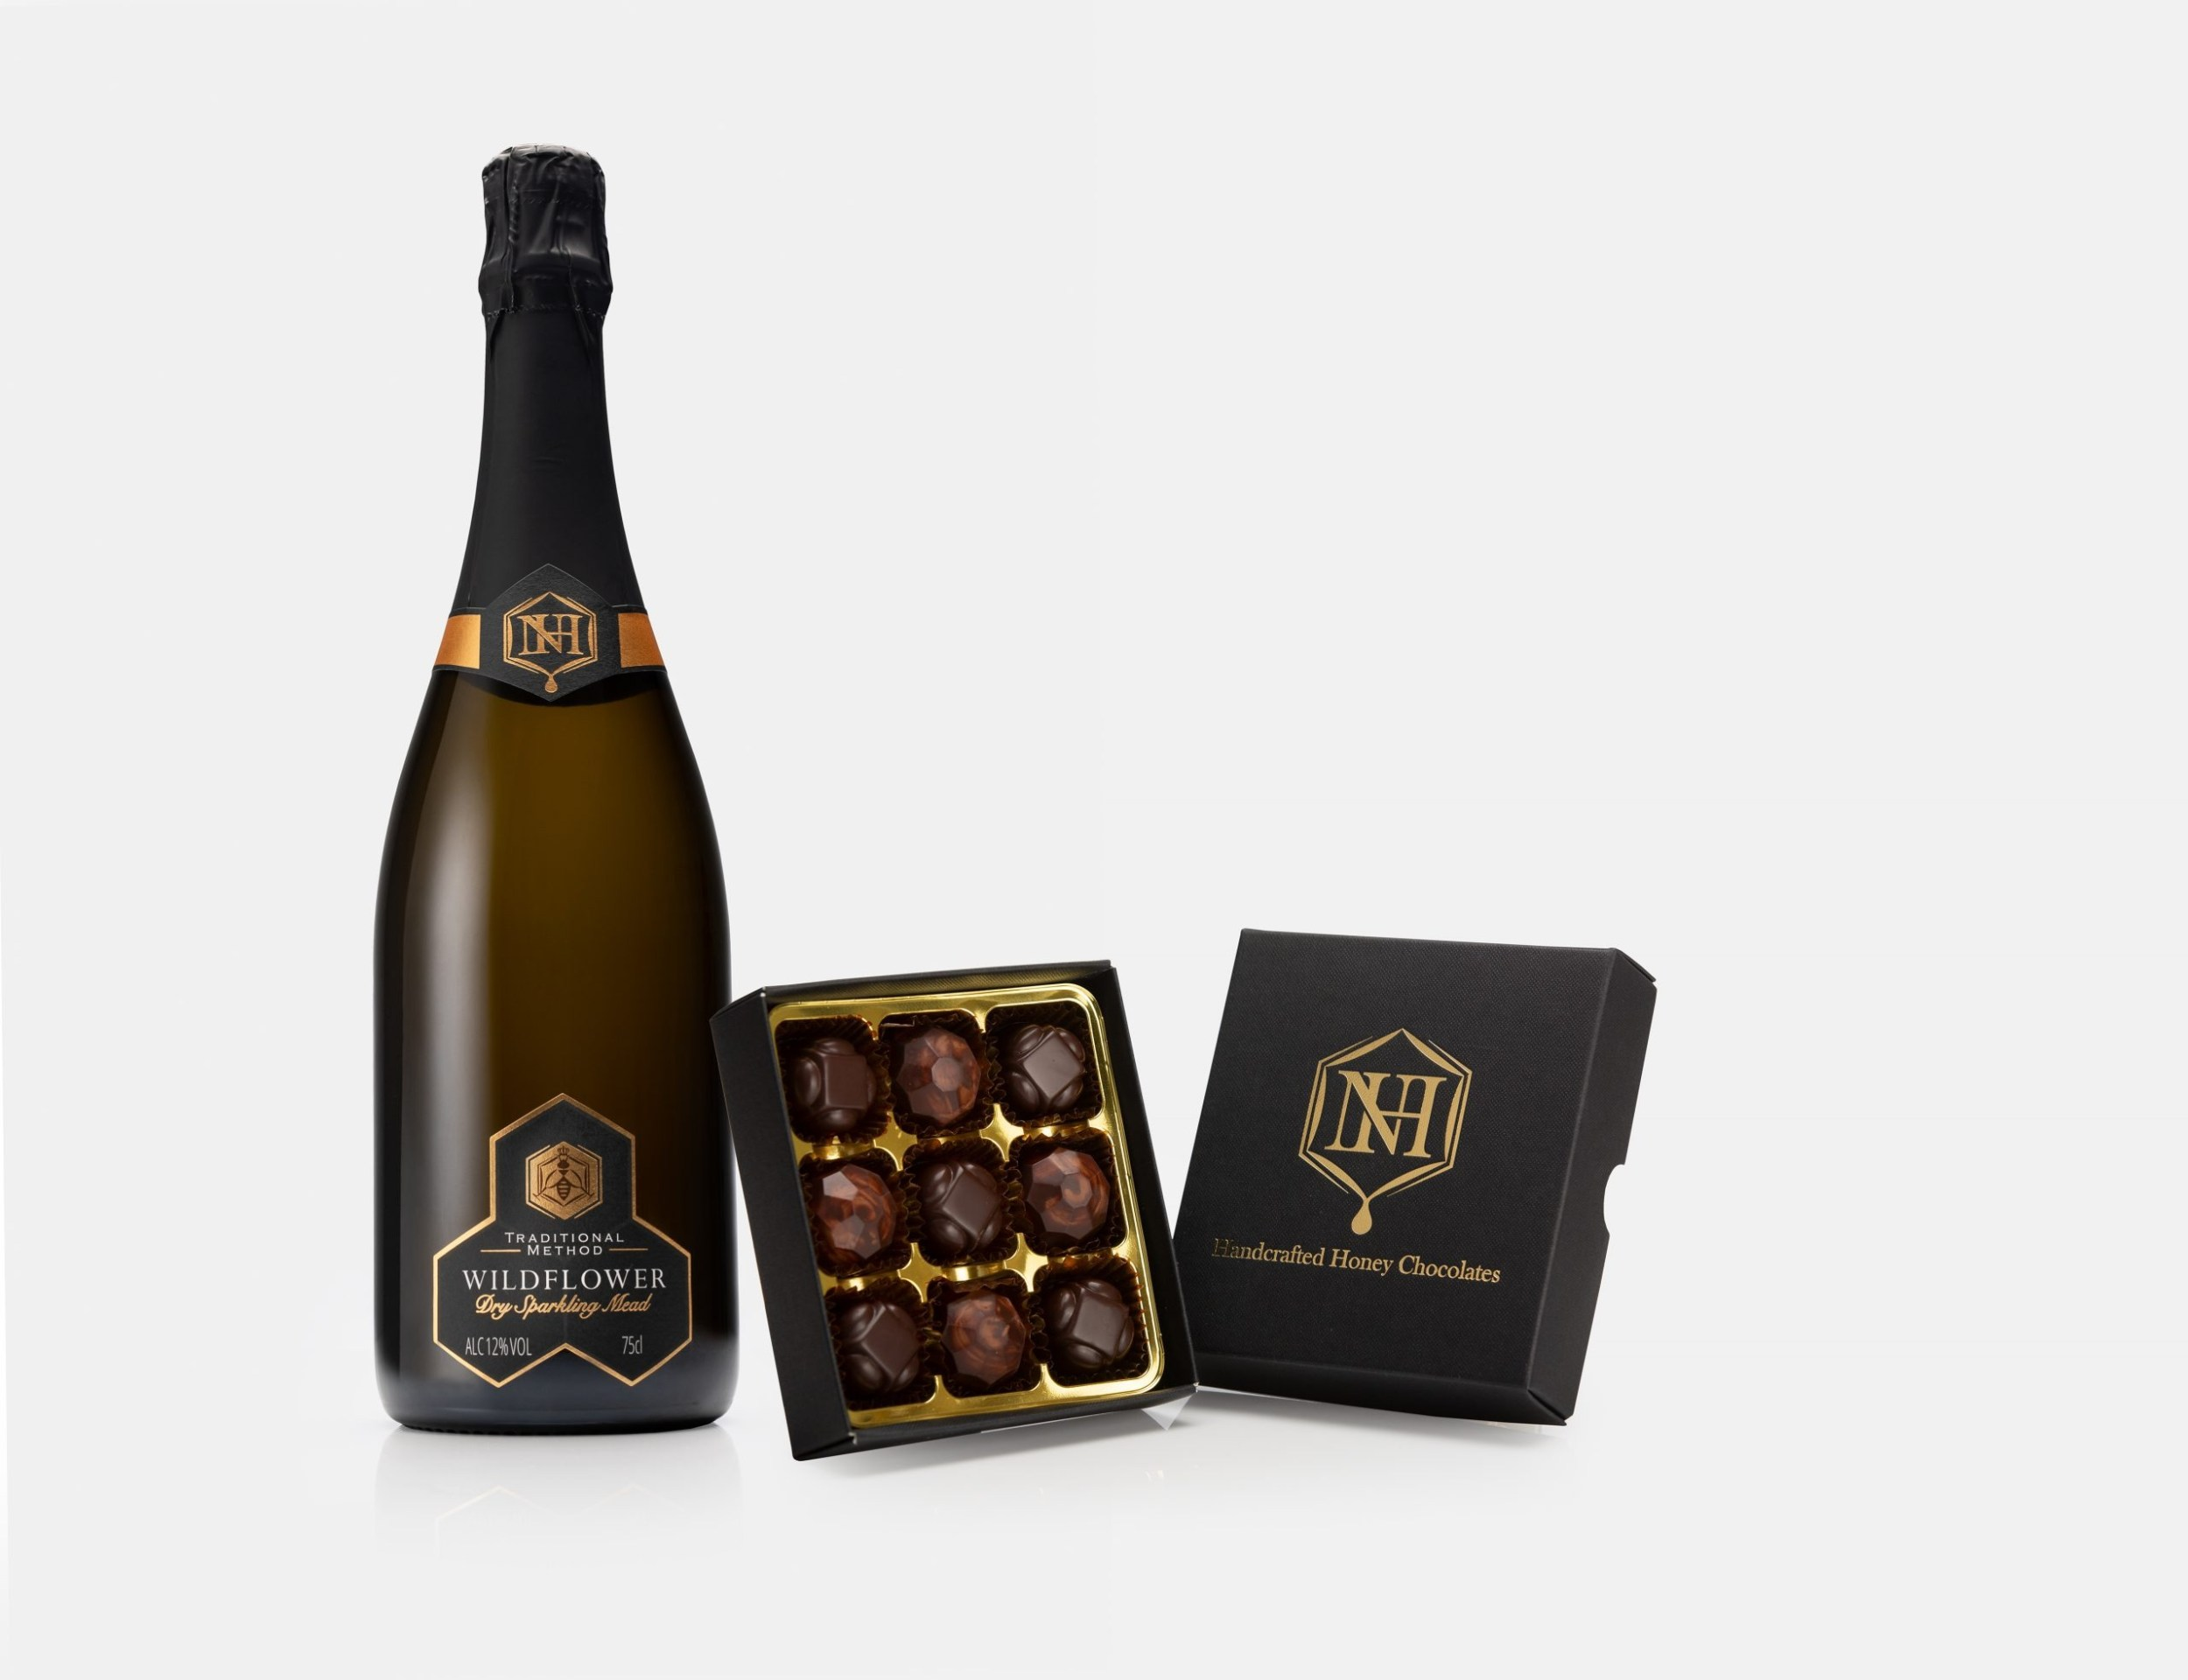 Wildflower Sparkling Mead with Honey Chocolate Truffles